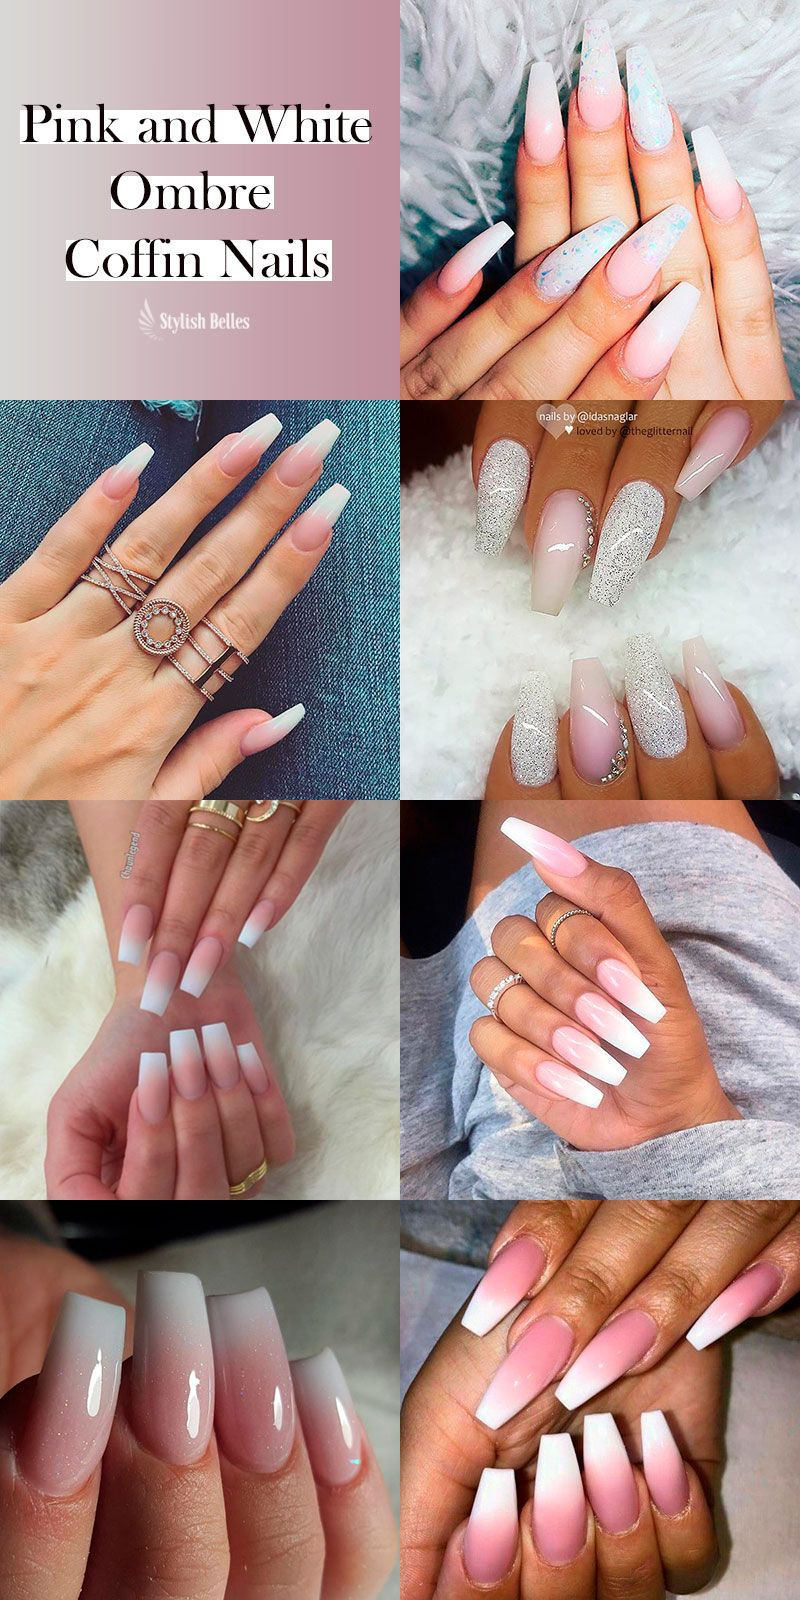 Pink And White Ombre Coffin Nails Ideas Coffinnails Ombrenails Pinkandwhitenails Ombre Nail Designs Pink Ombre Nails Shiny Nails Designs